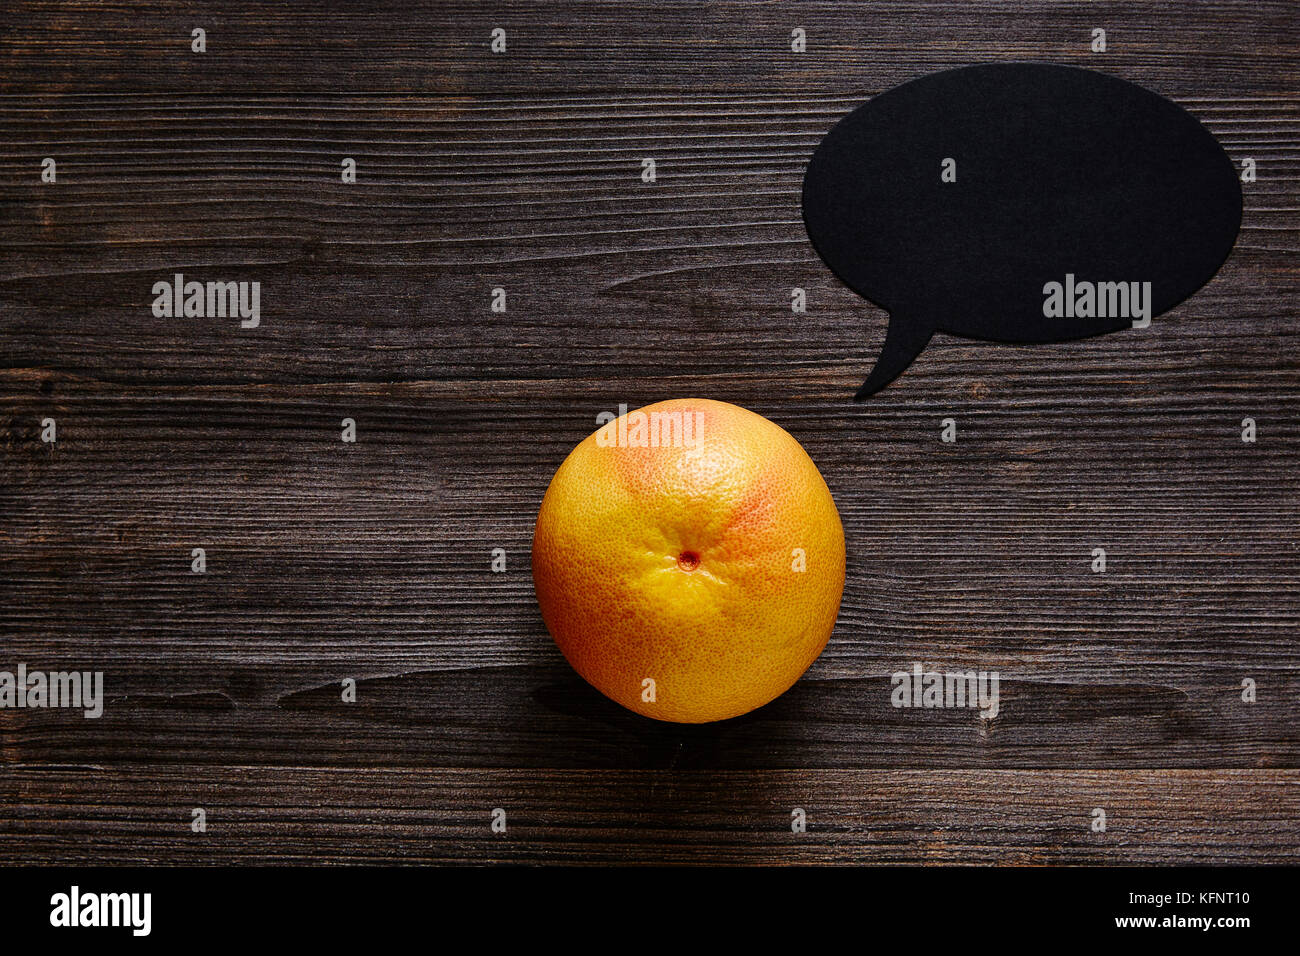 grapefruit with speechbubble has something to say - Stock Image